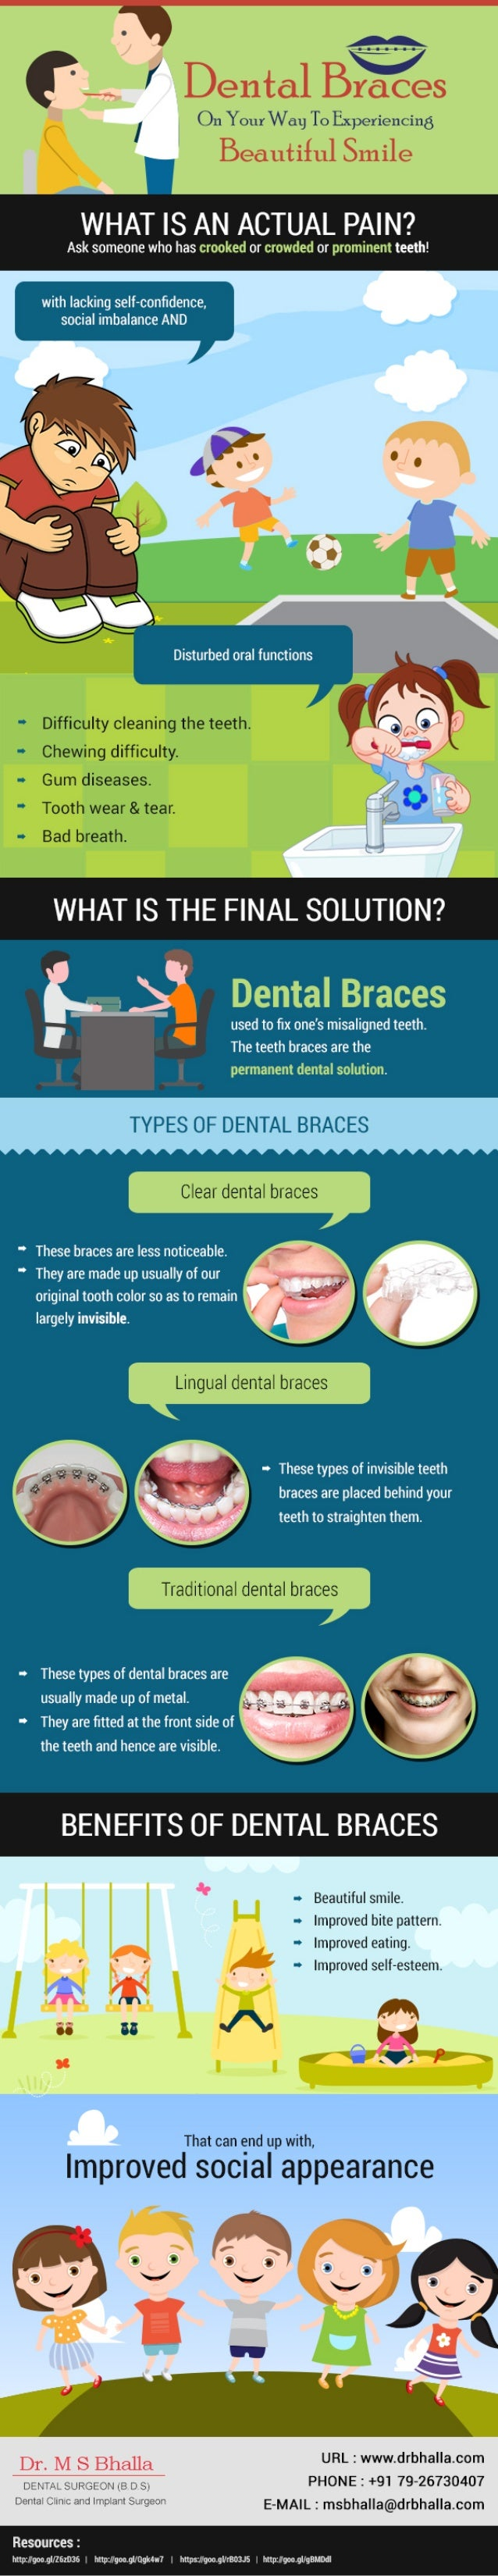 Dental Braces On Your Way To Experiencing Beautiful Smile